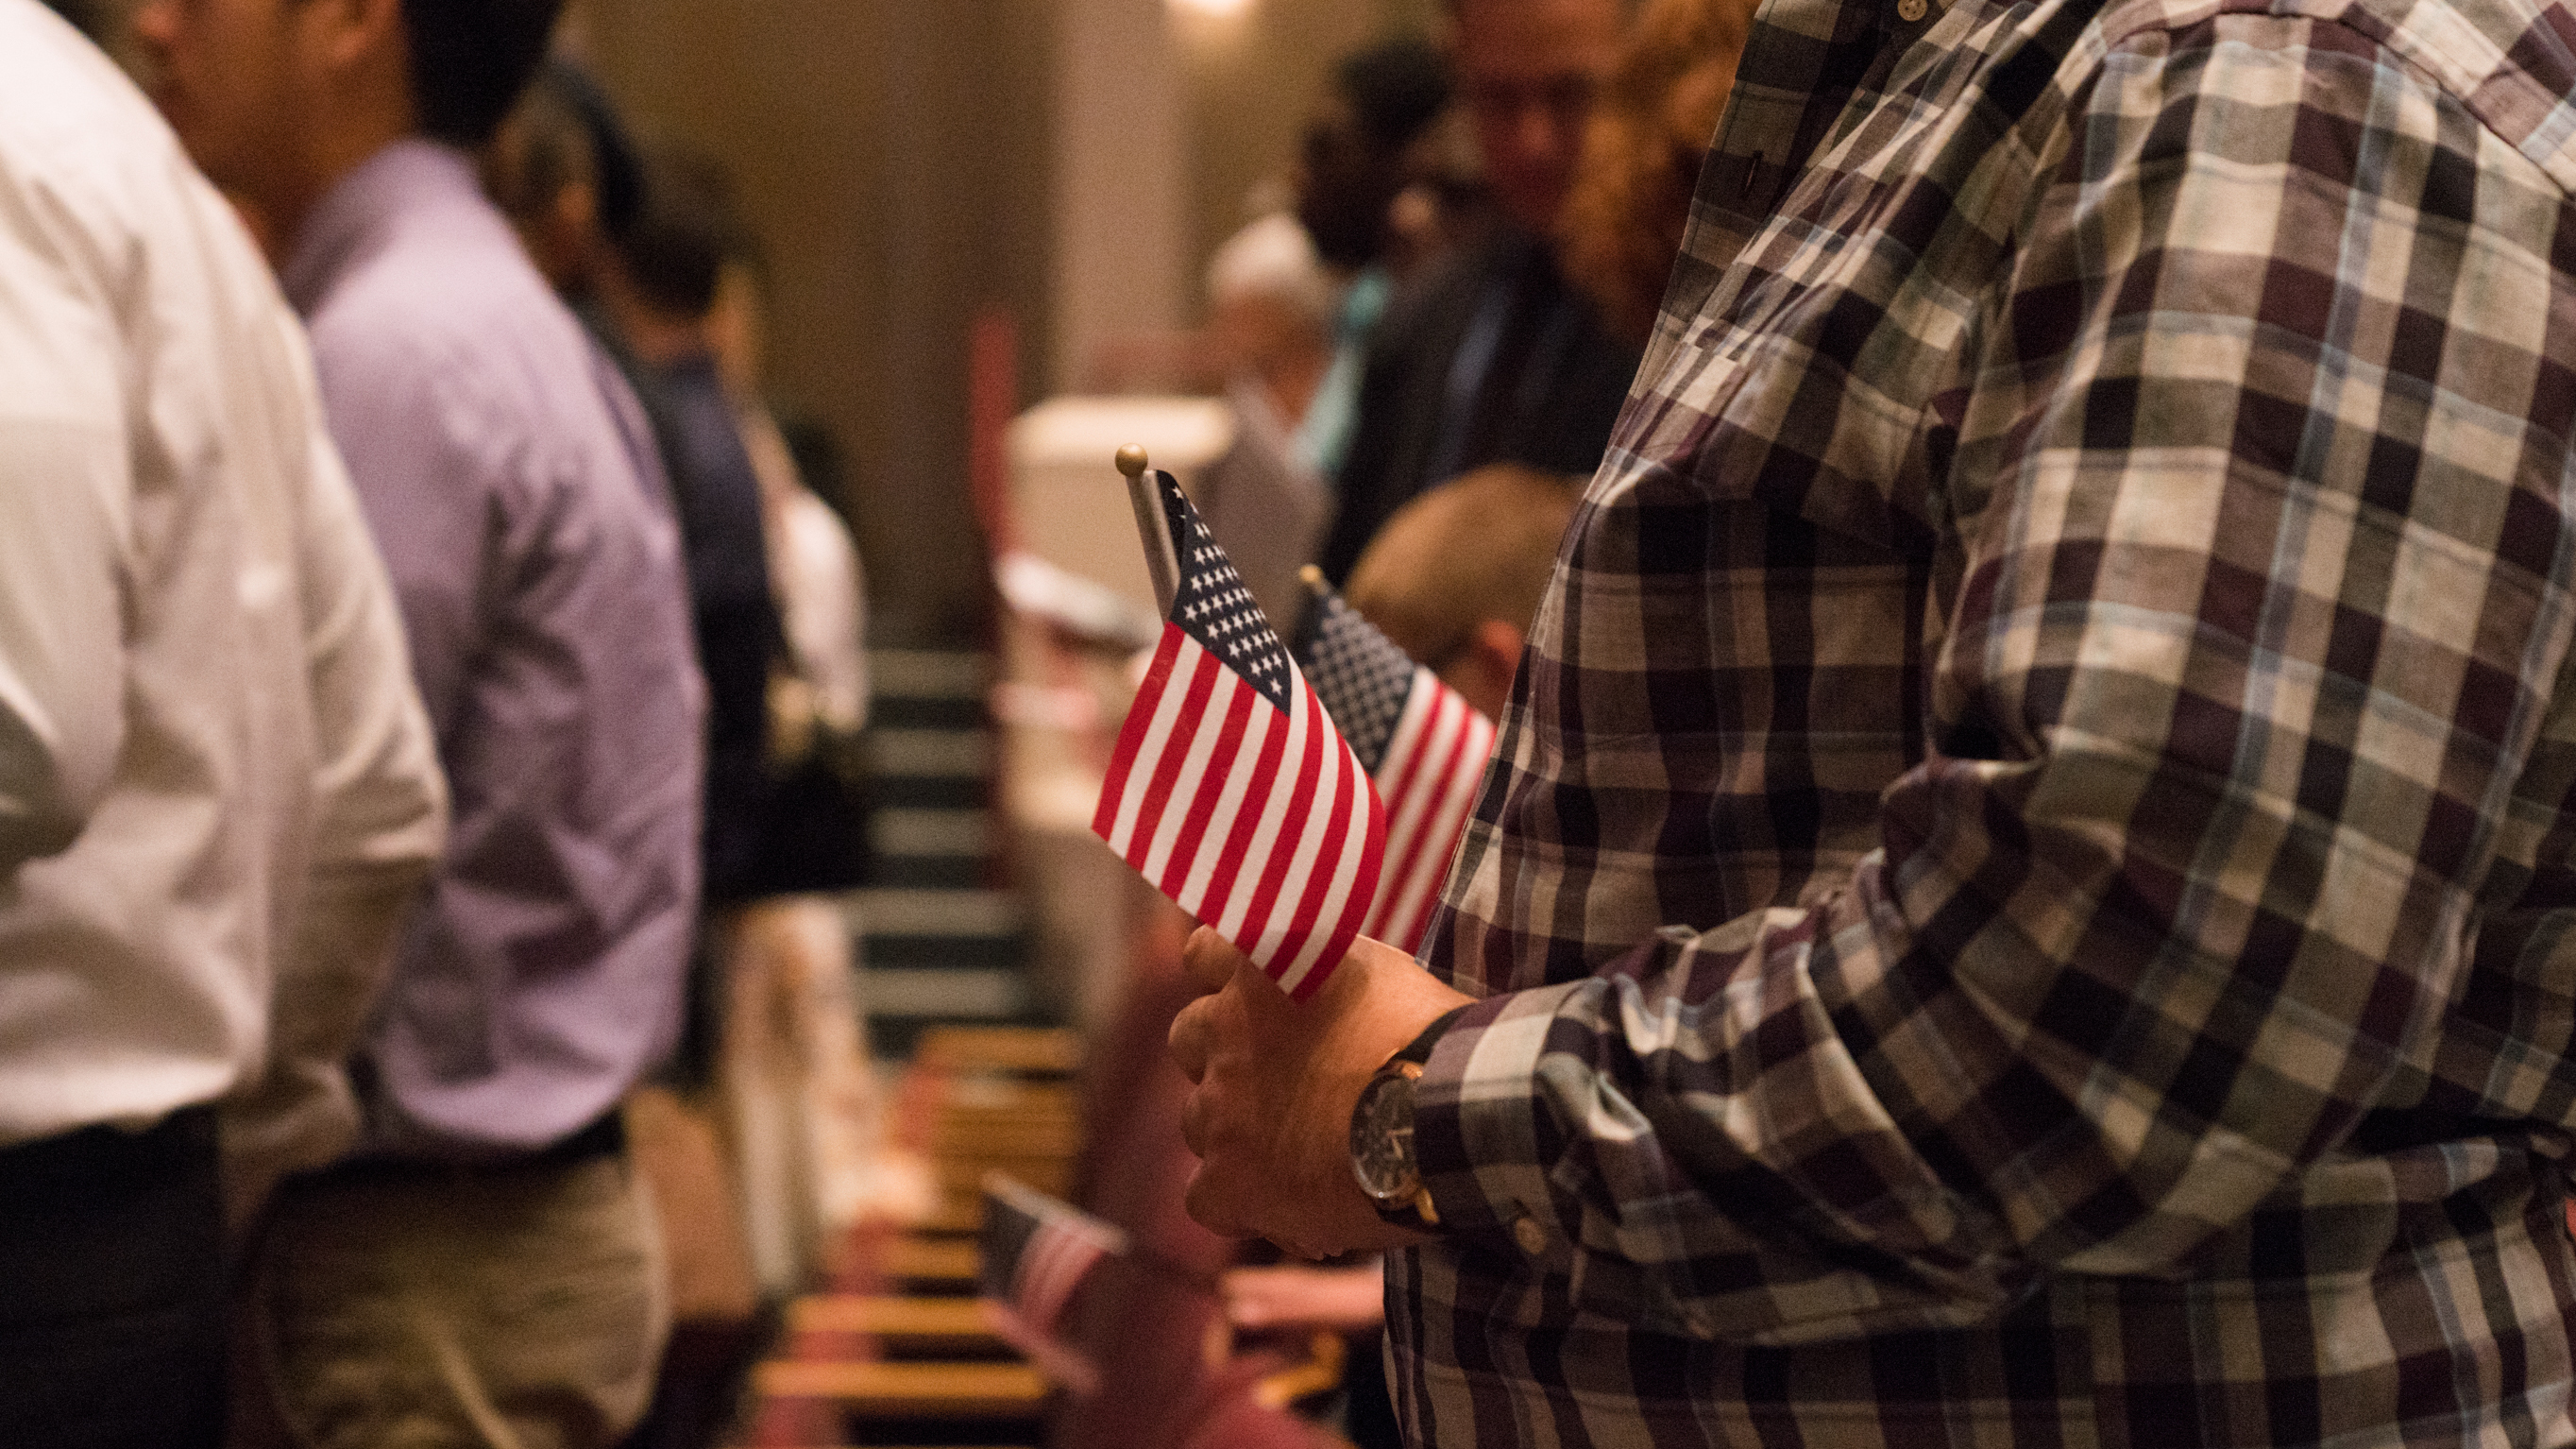 Newly sworn-in U.S. citizens rise from their seats during a 2018 naturalization ceremony in Alexandria, Va.